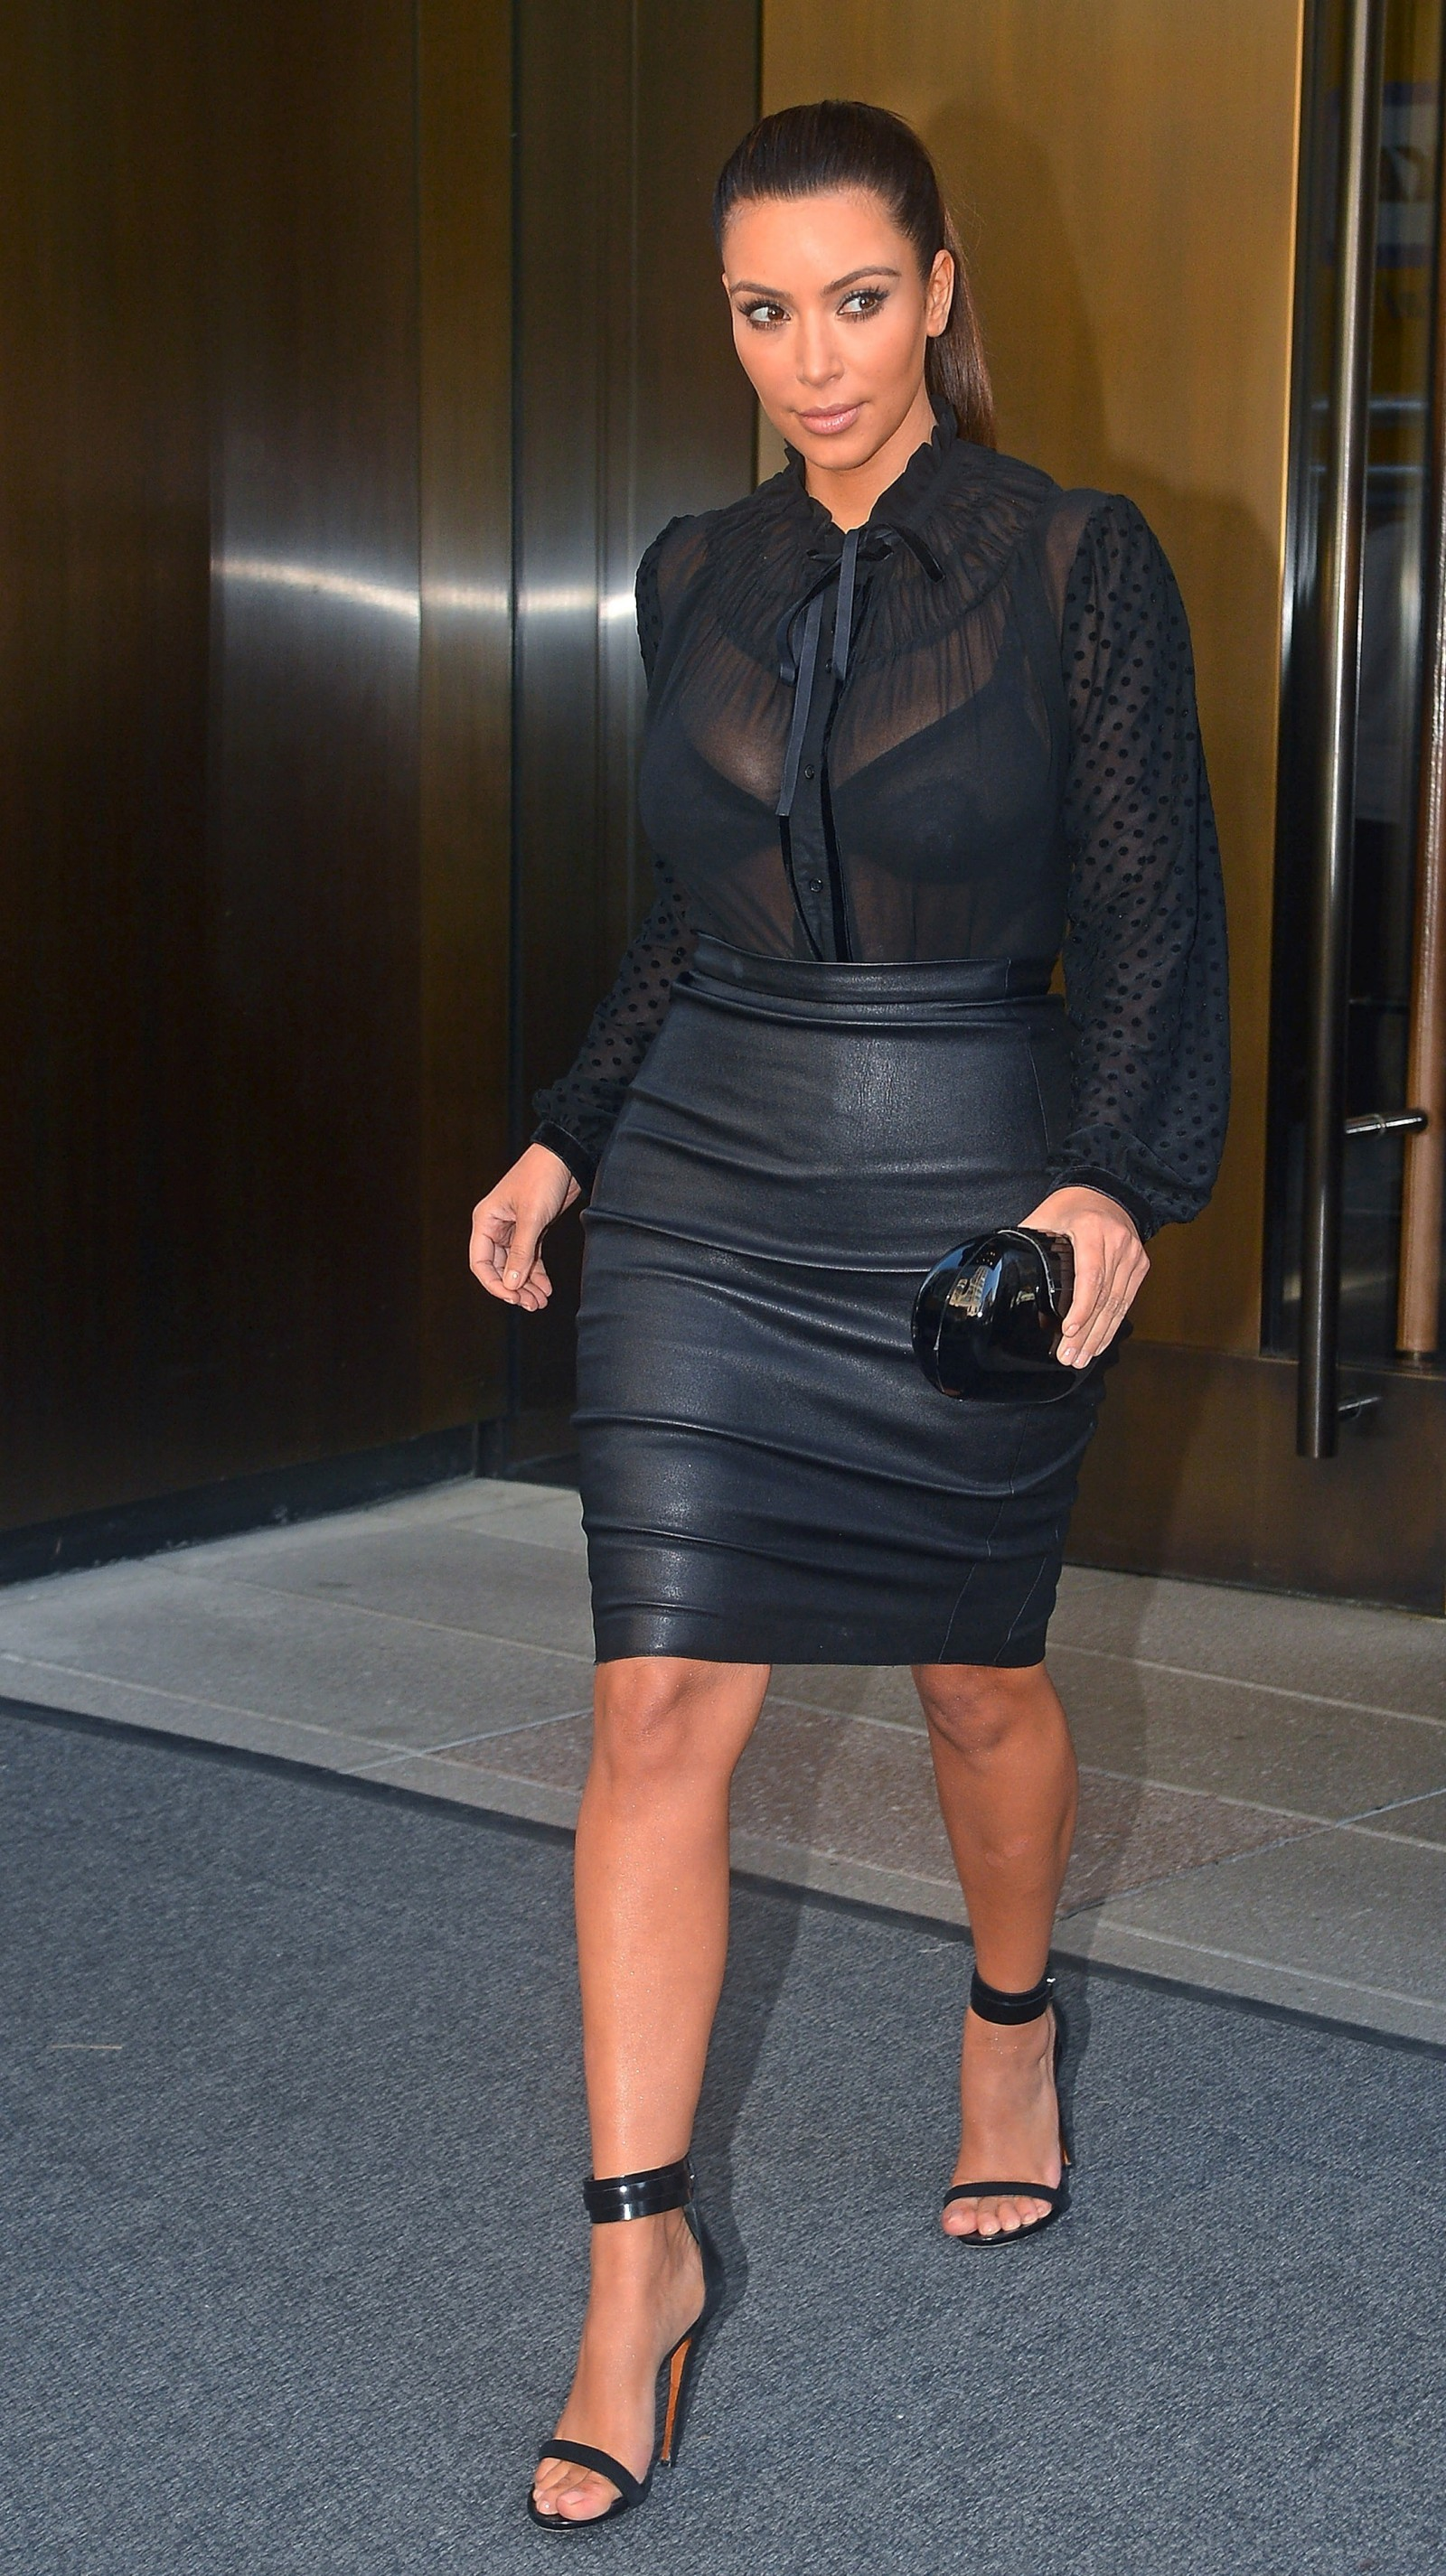 Kim Kardashian - In Tight Leather Skirt-05 - GotCeleb